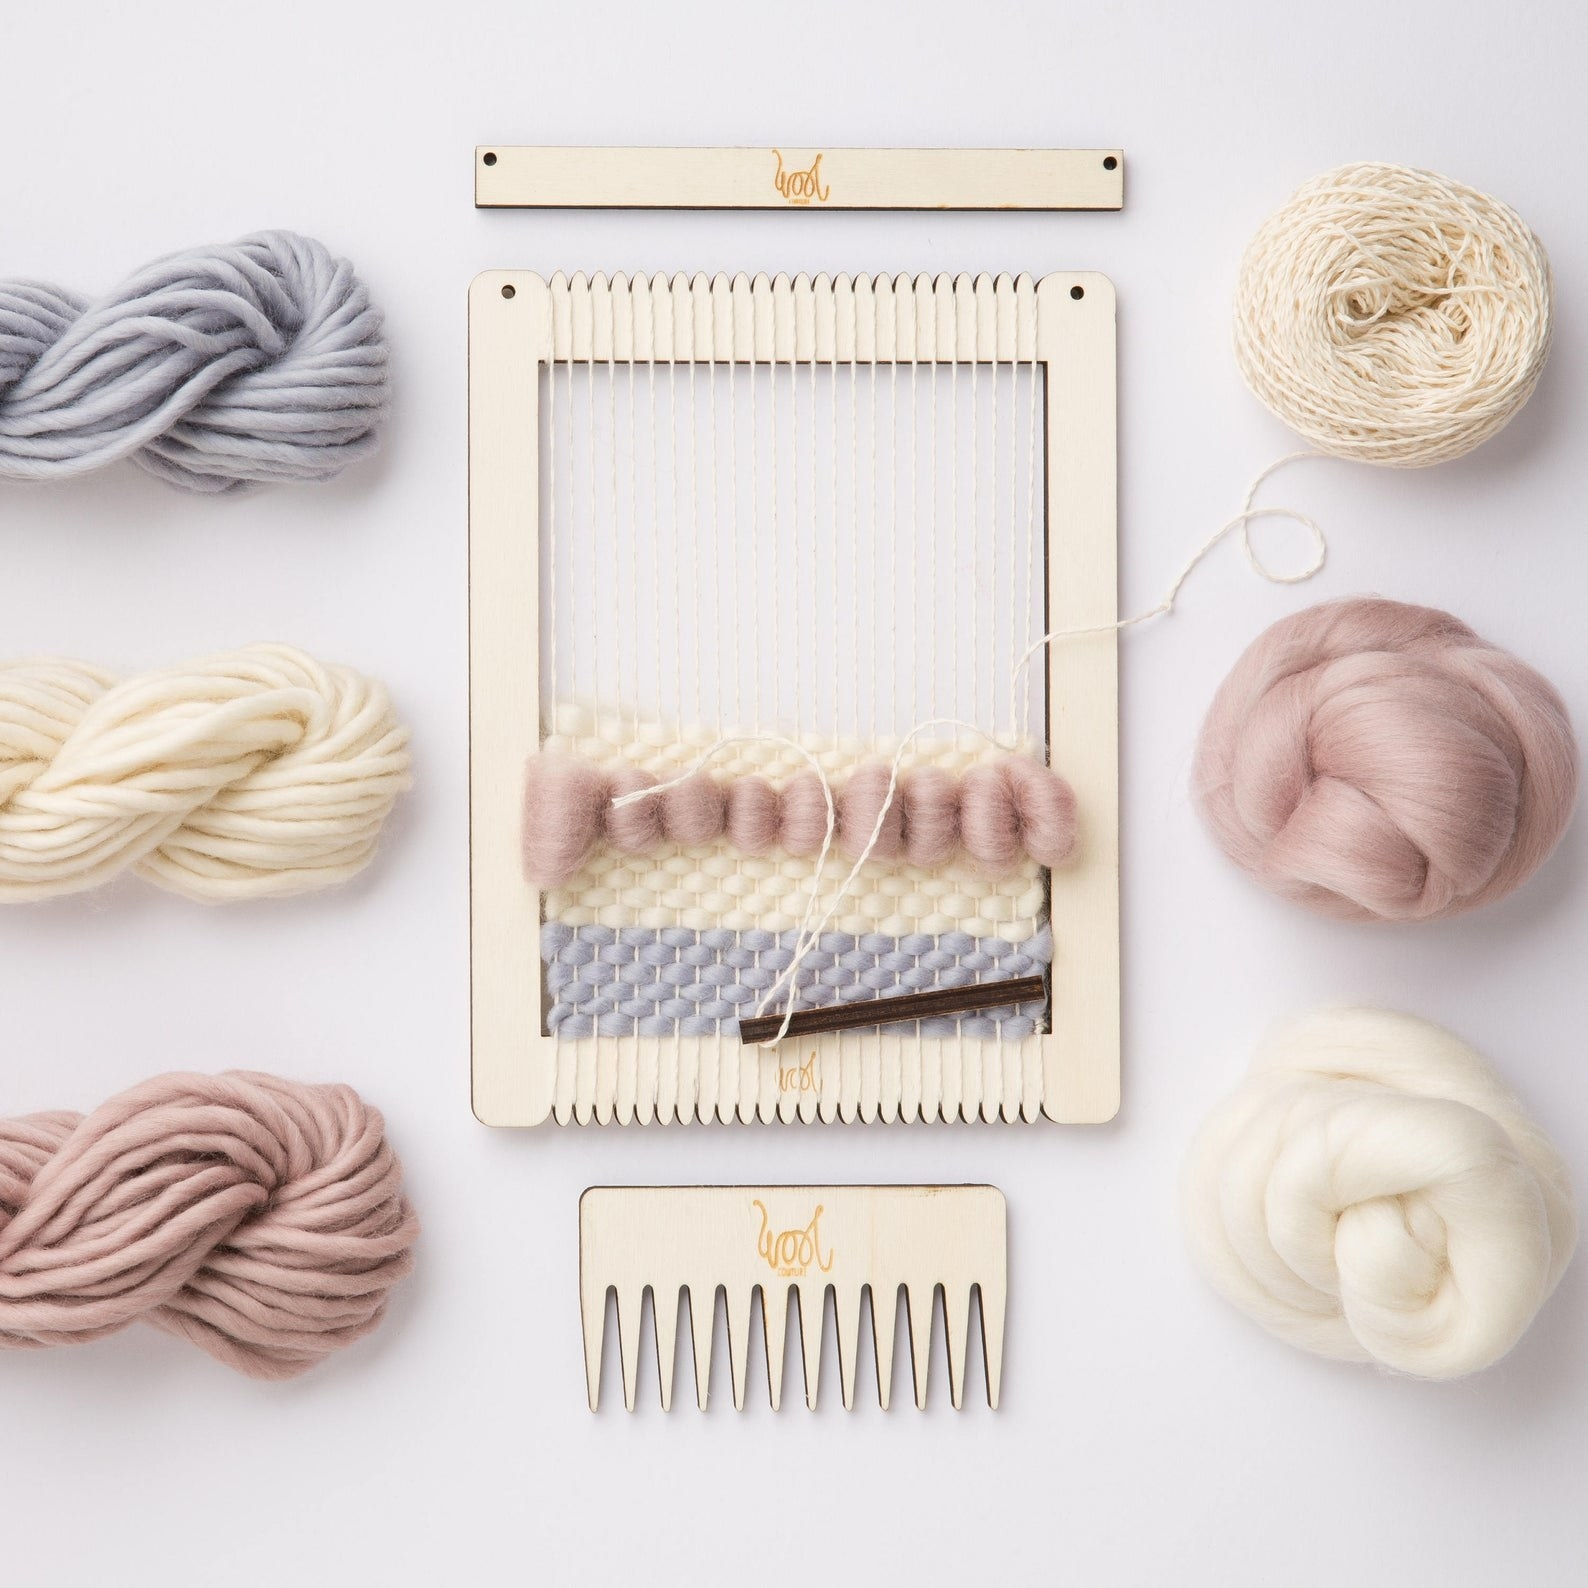 A weaving look with half of a project completed on it in dusty pink, blue, and ivory